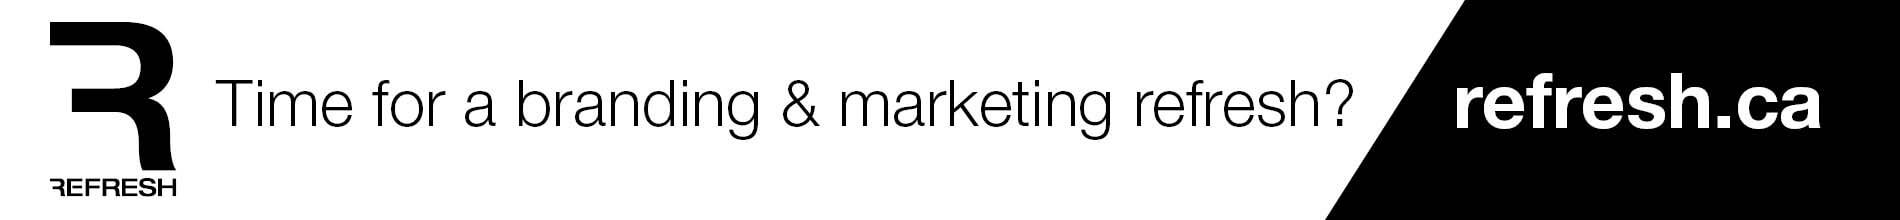 Time for a branding and marketing refresh